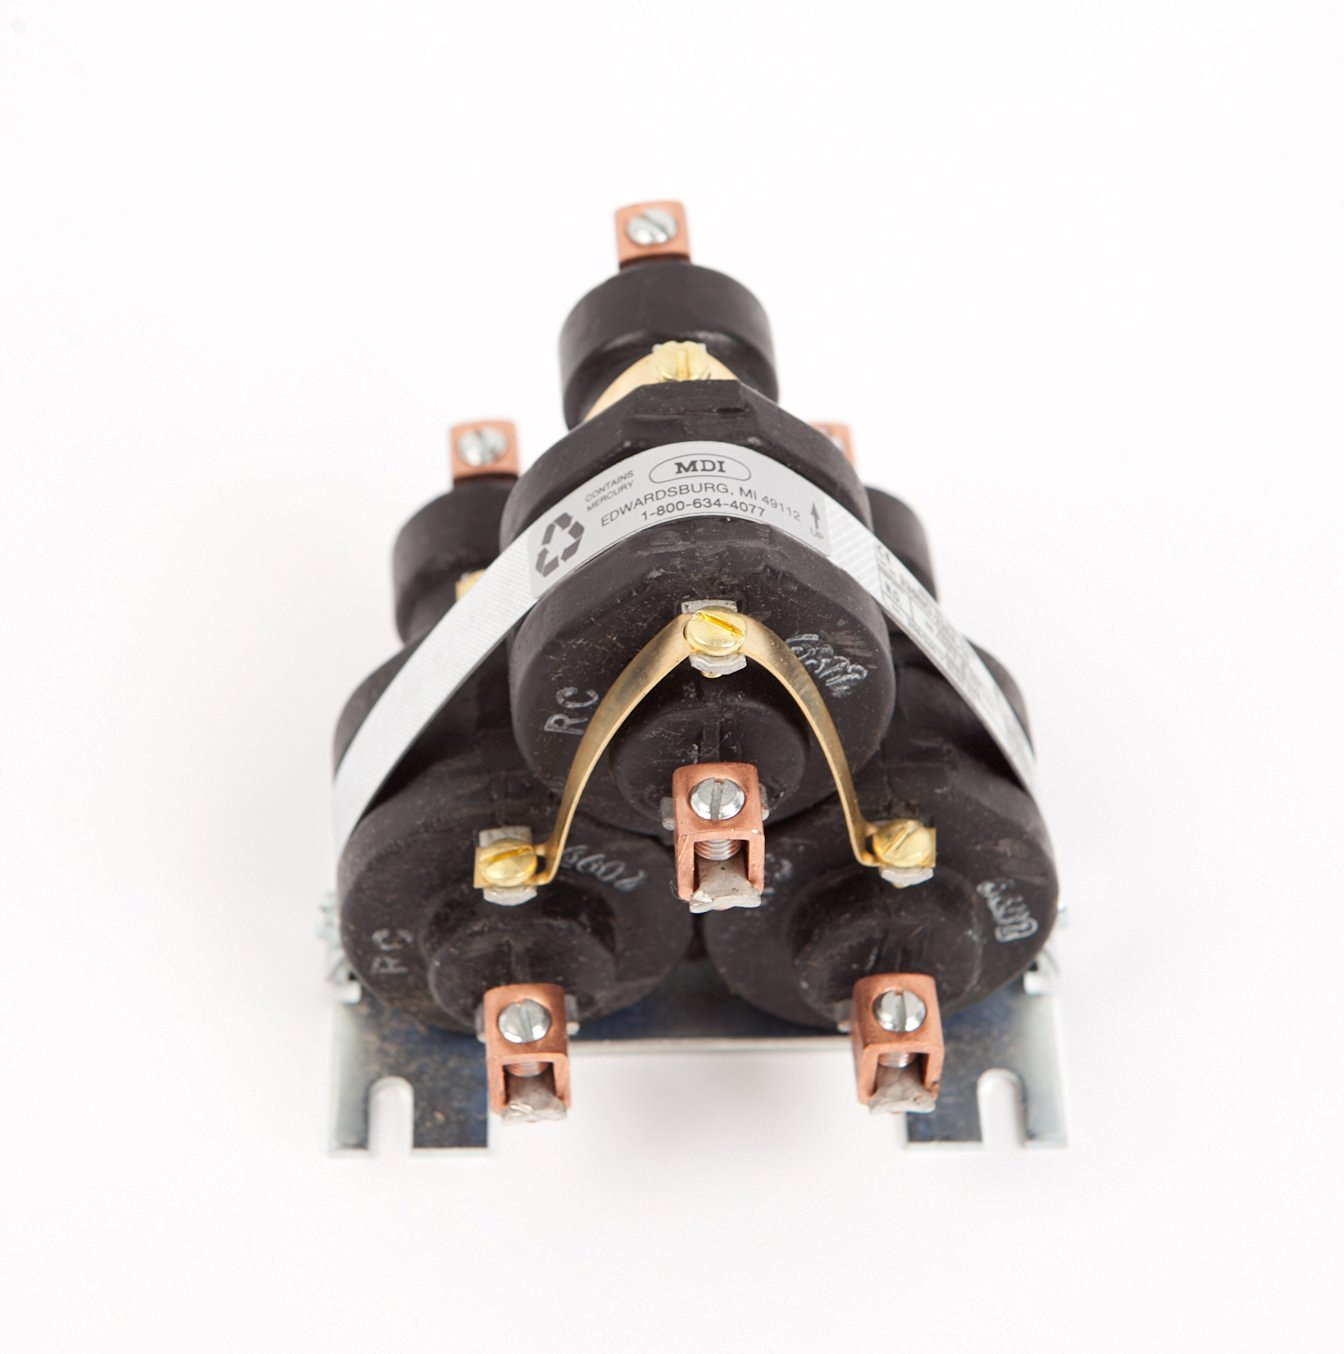 600 Volt alternating current switch Nieco 4016 3 pole 80 AMP